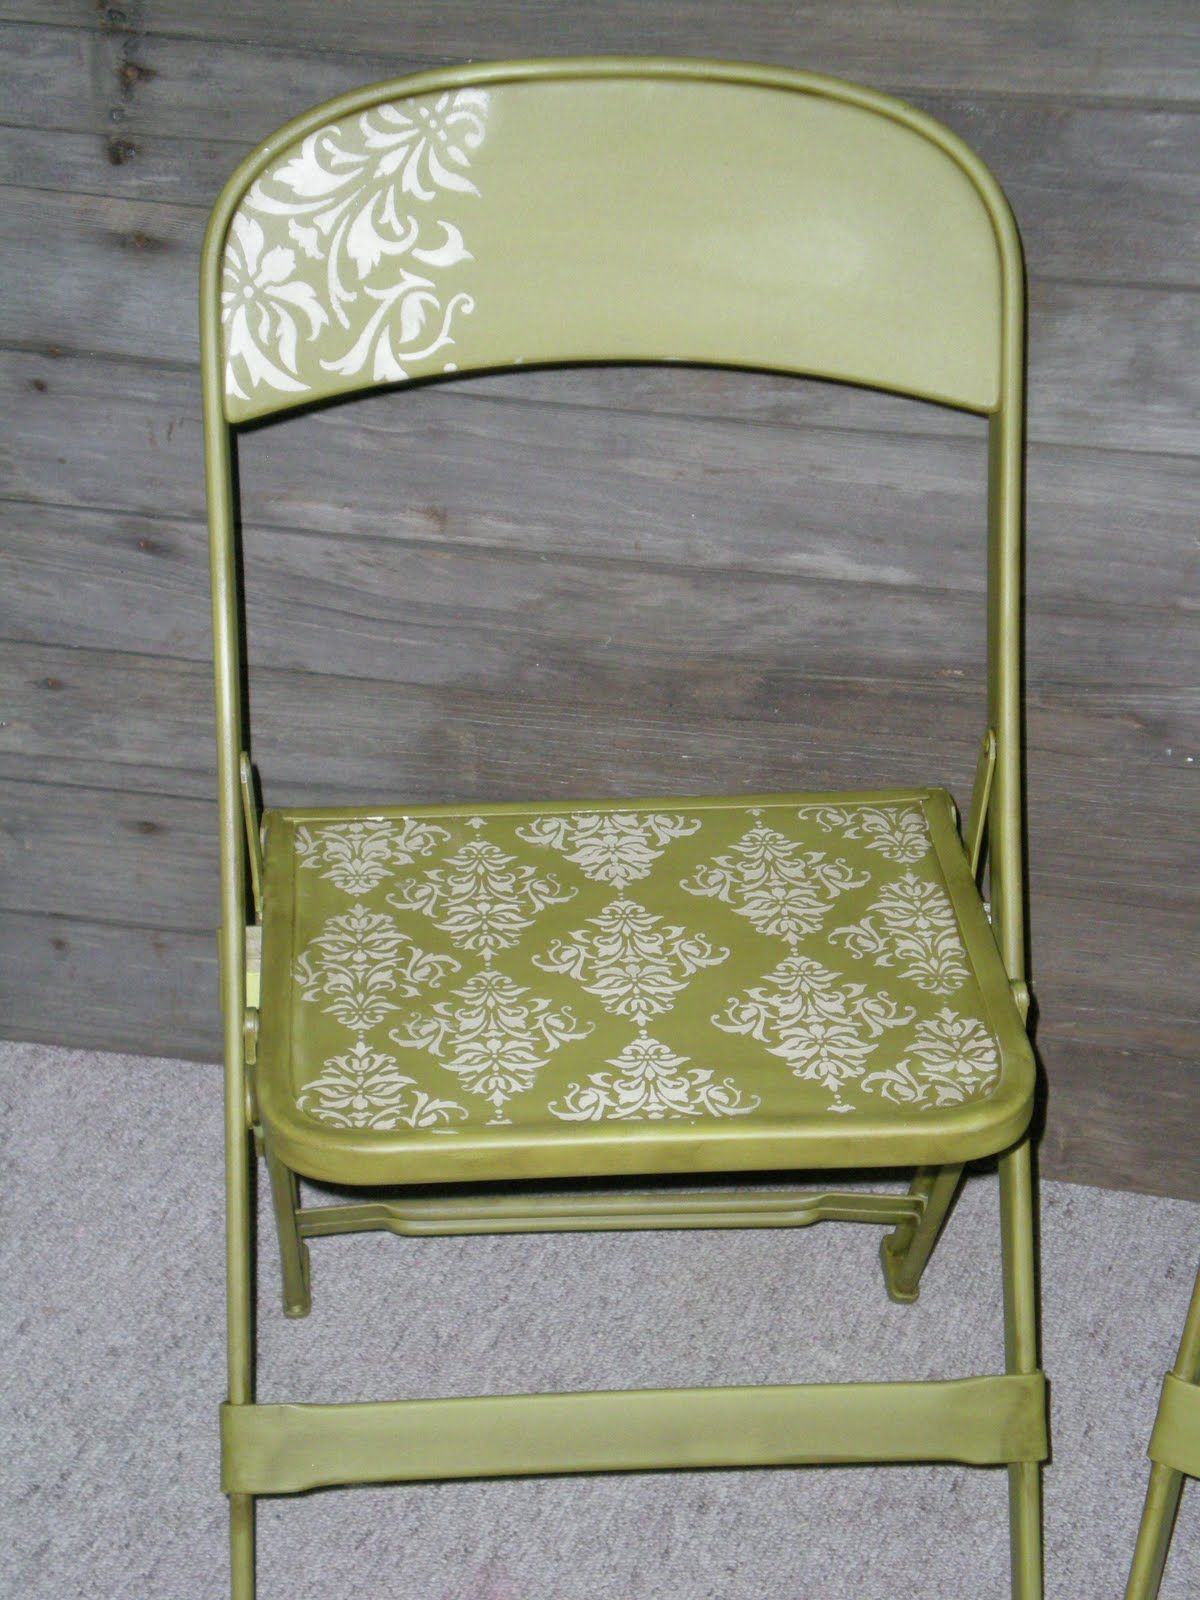 Cute Folding Chairs Stenciled Folding Chair What A Cute Way To Make Ugly Folding